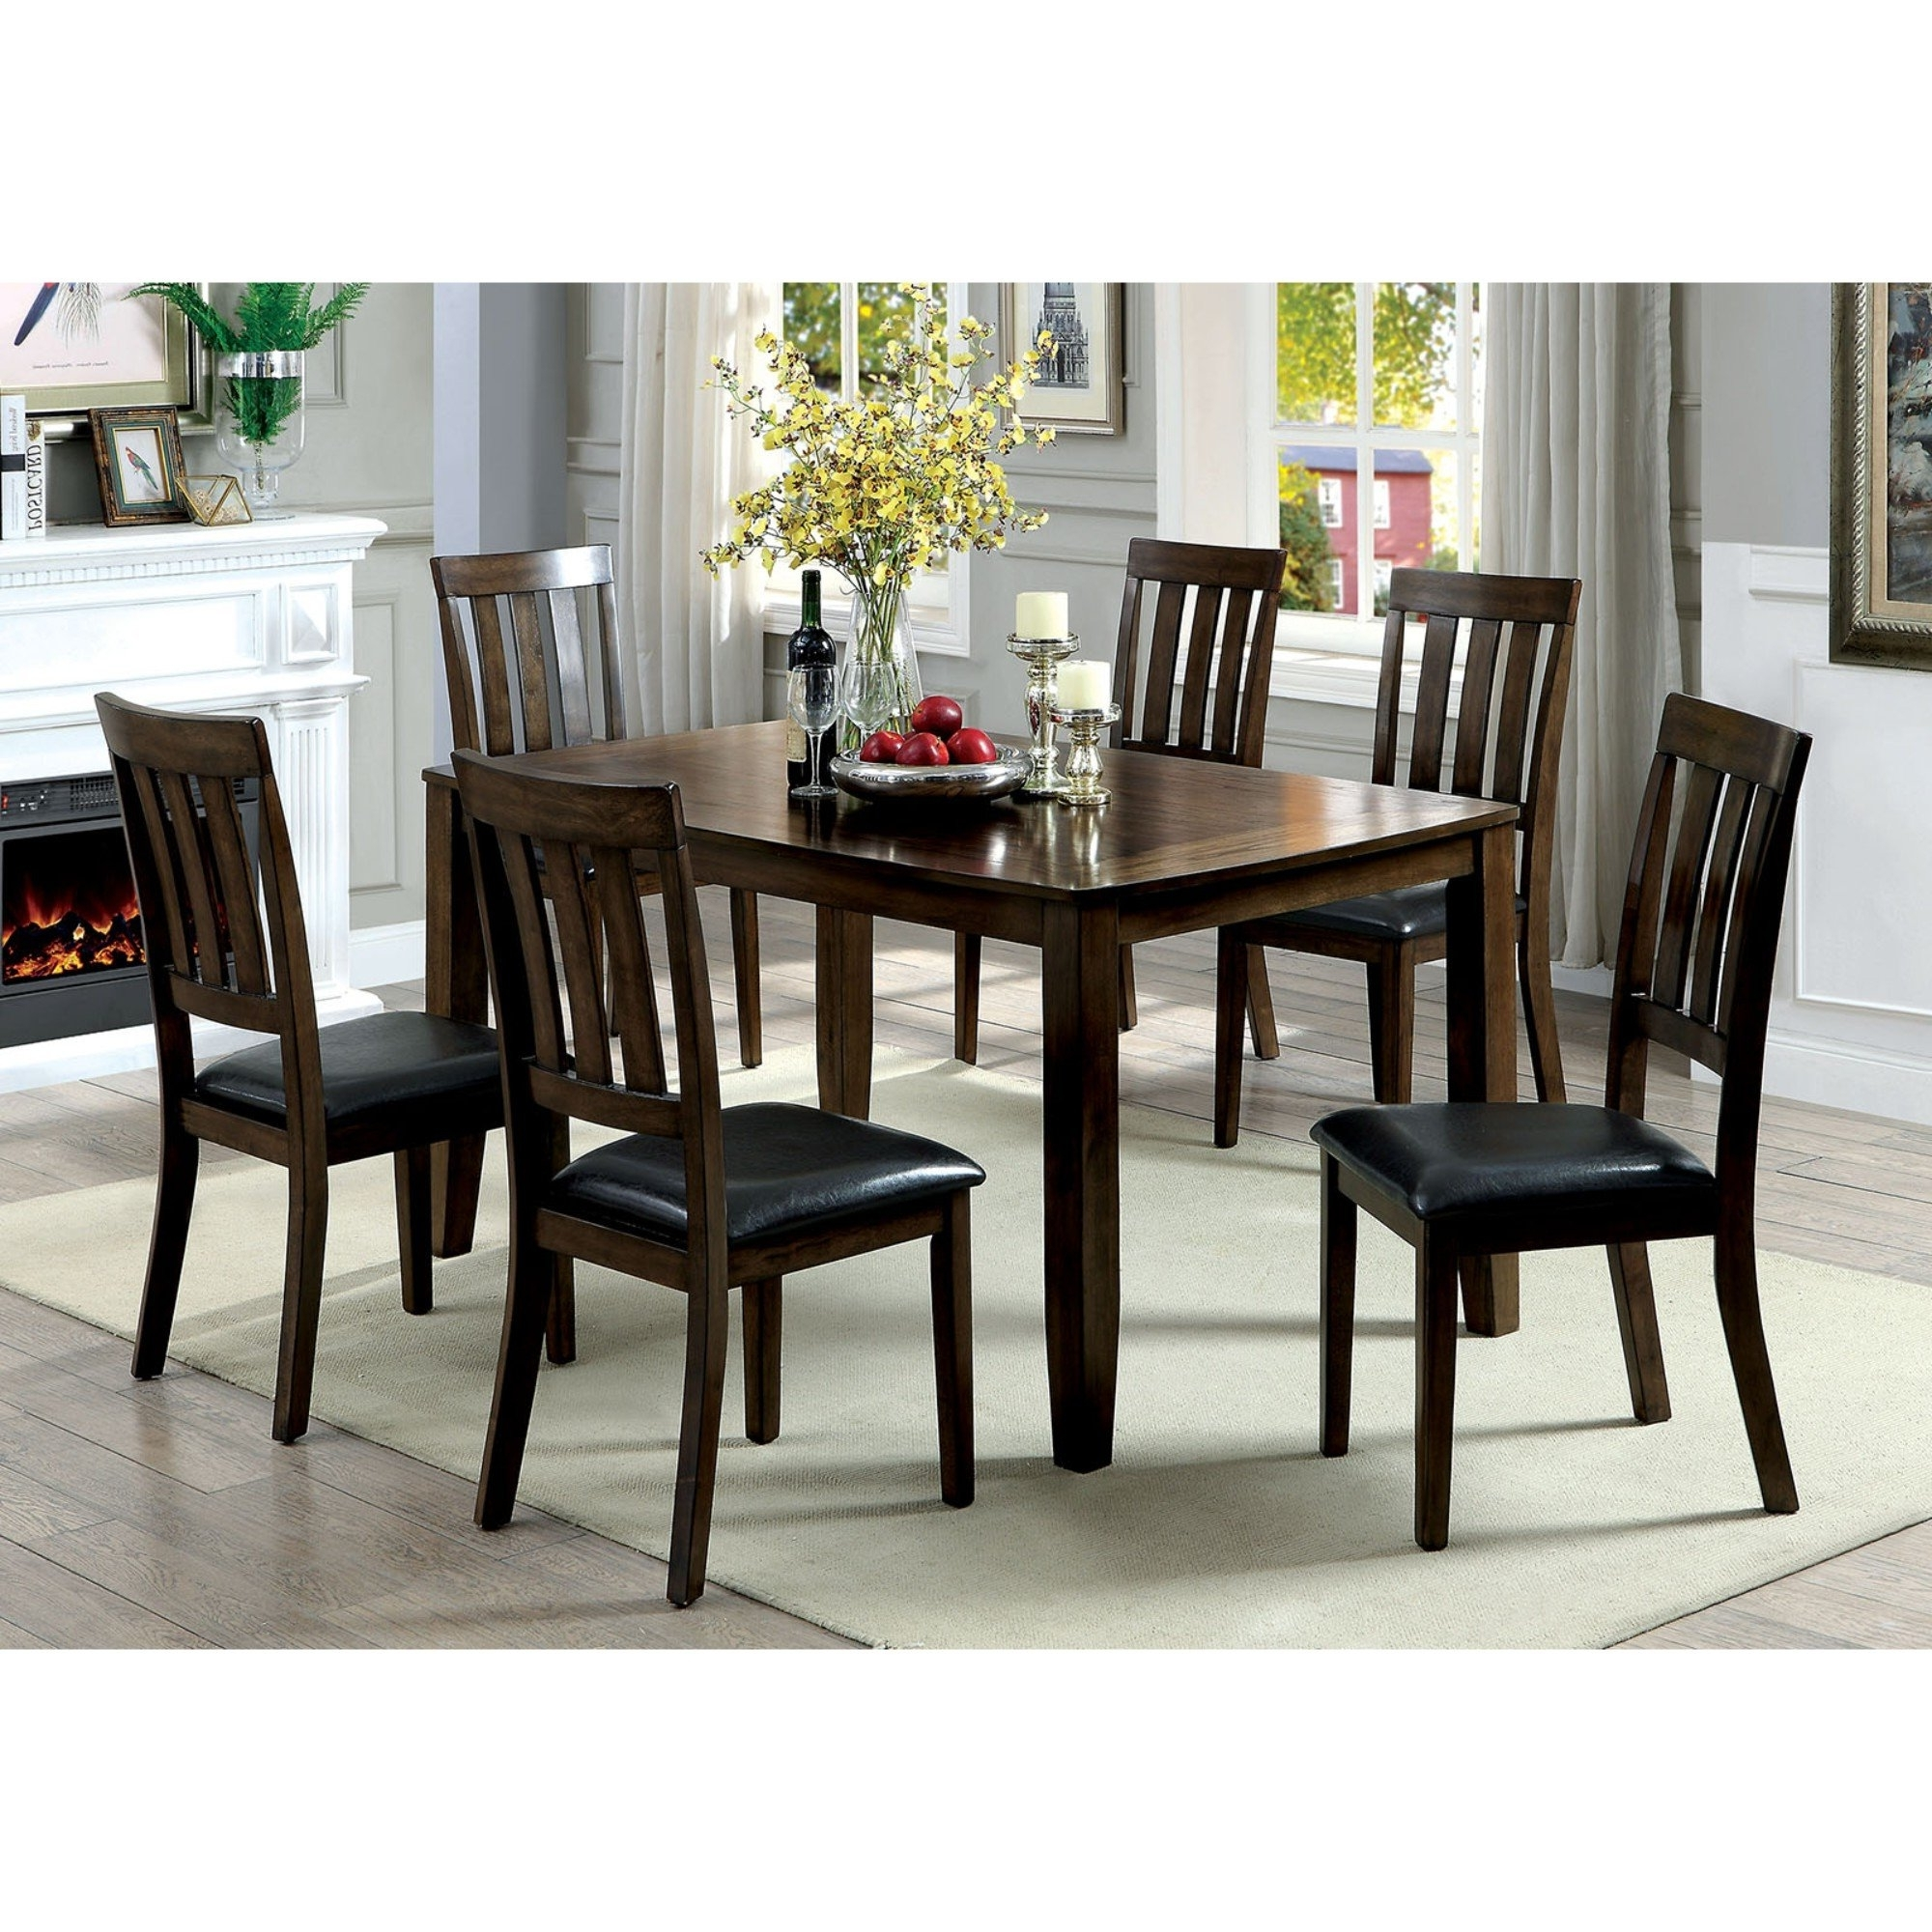 Most Popular Millwood Pines Devon Wooden 7 Piece Counter Height Dining Table Set For Candice Ii 5 Piece Round Dining Sets With Slat Back Side Chairs (View 15 of 25)